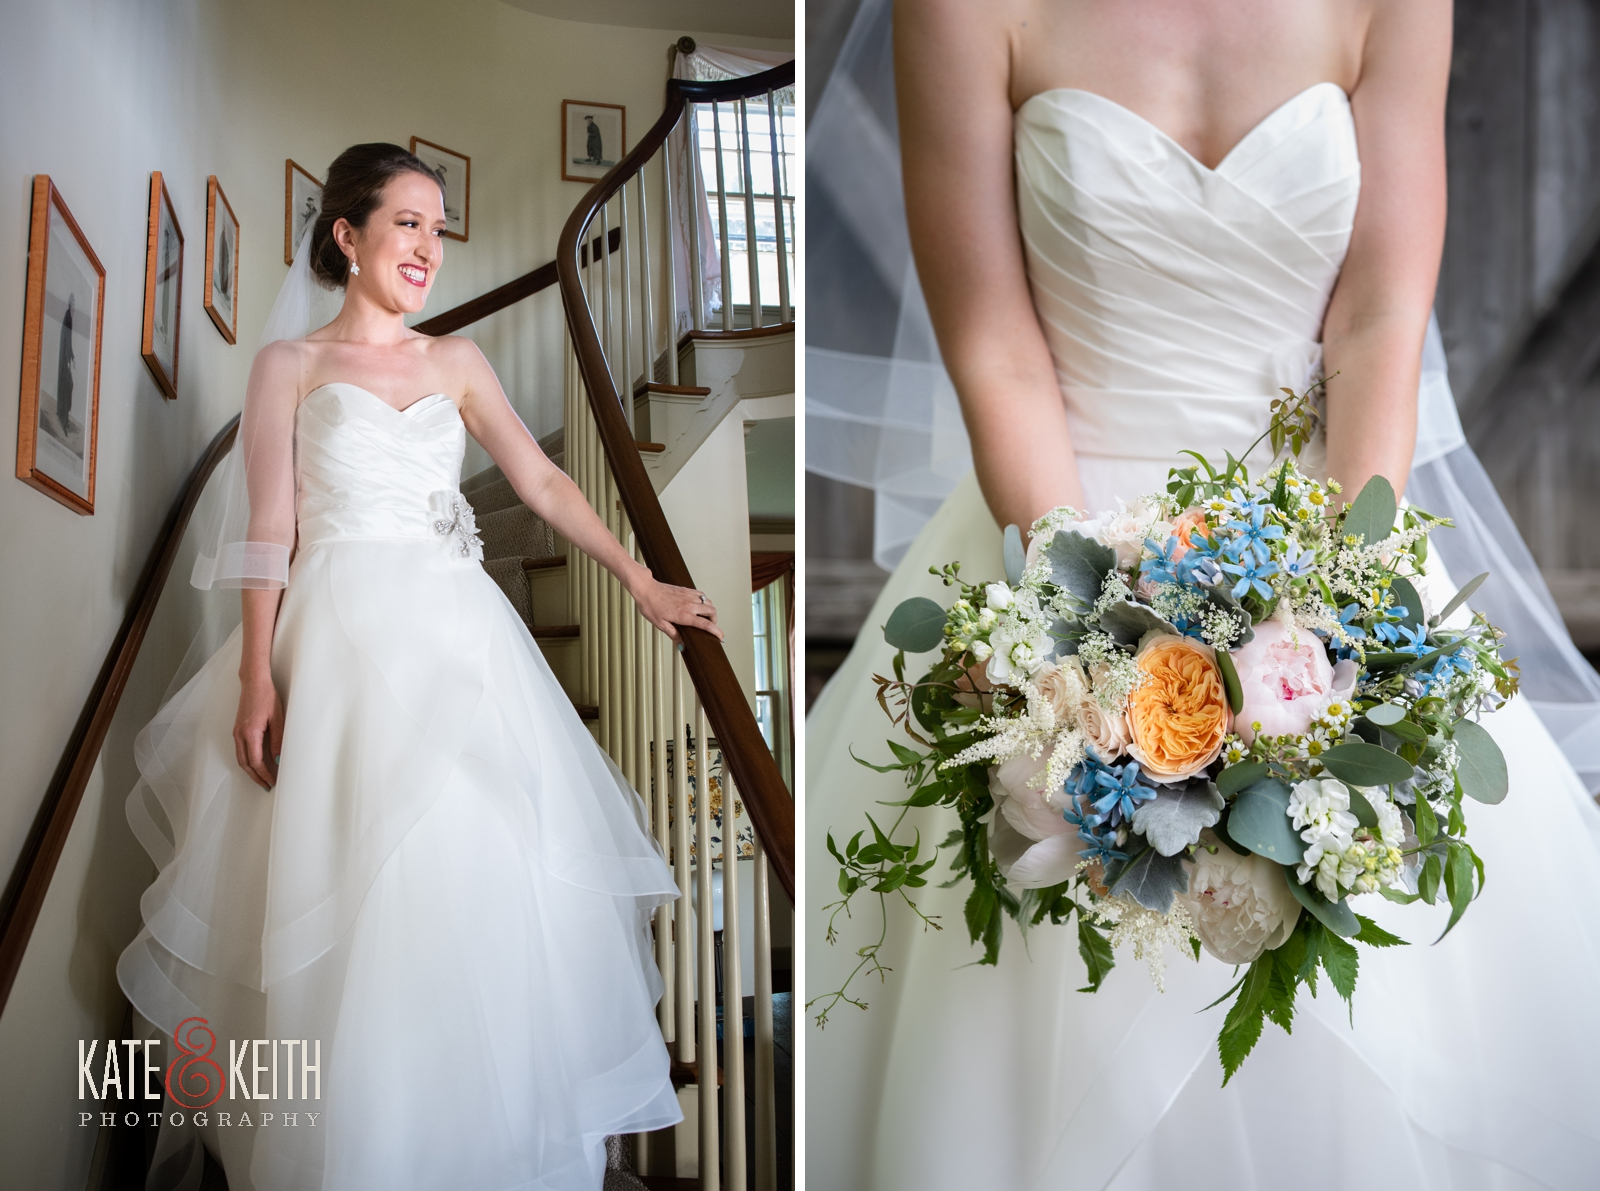 cheerful wedding bouquet, unstructured wedding flowers, garden roses and peonies